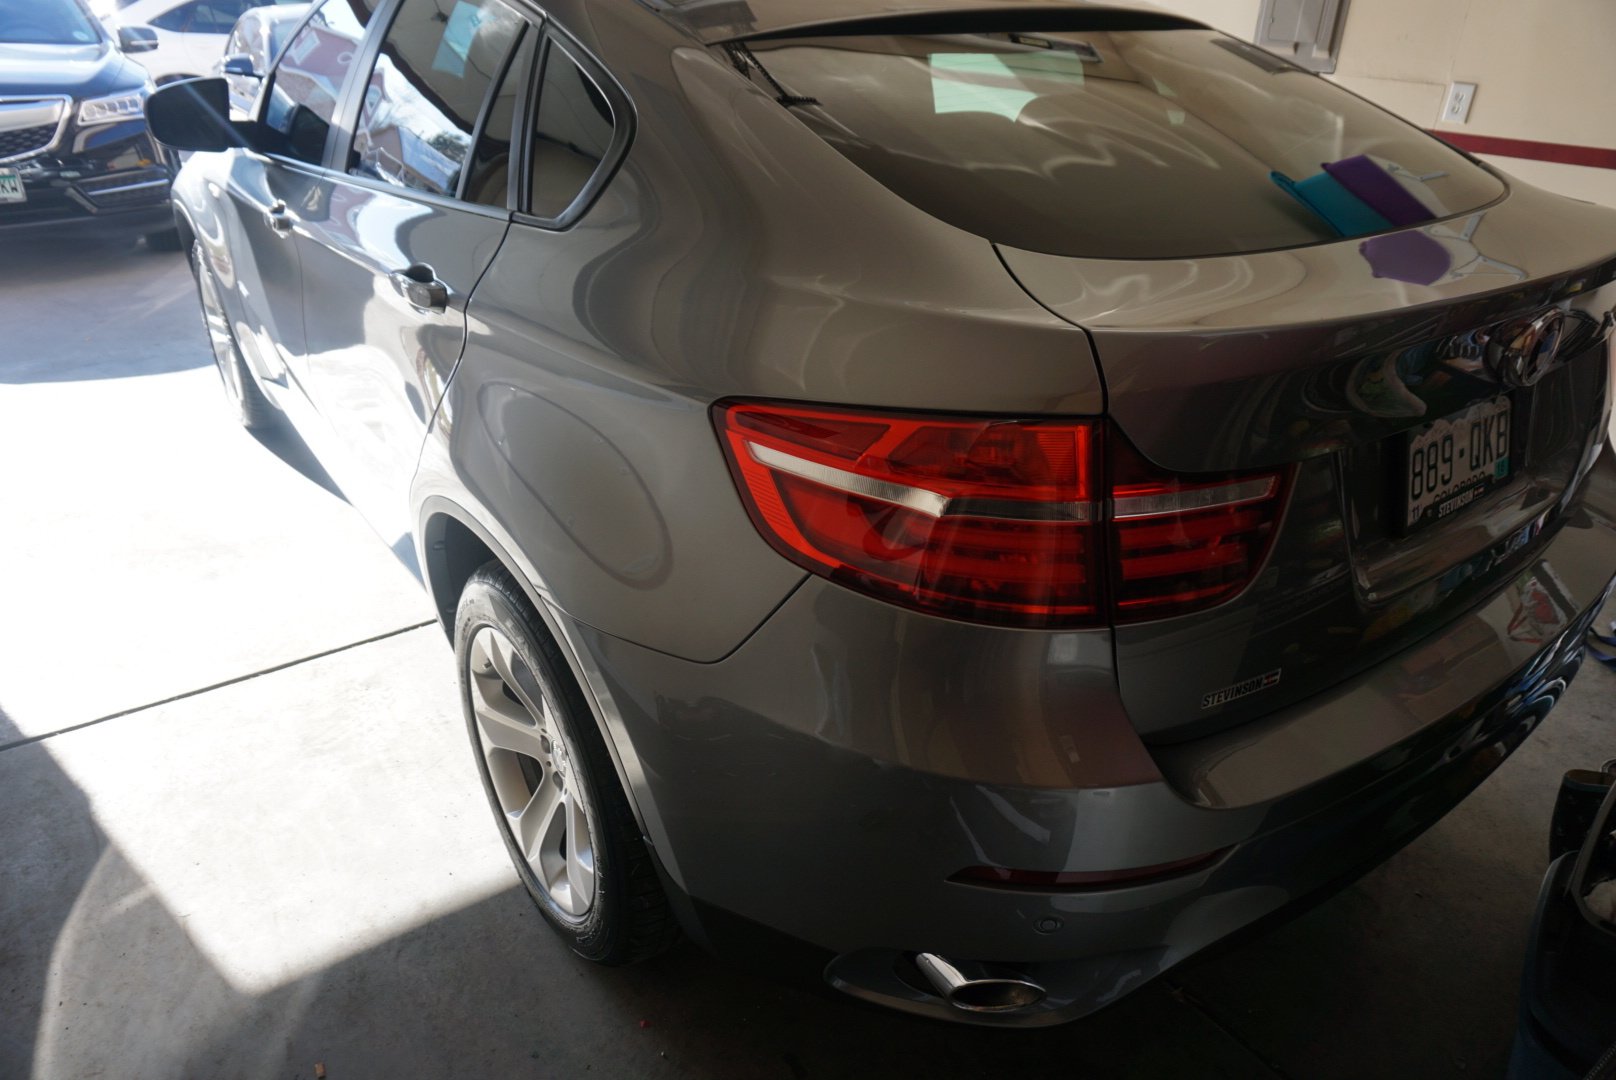 bmw X6 top notch detail